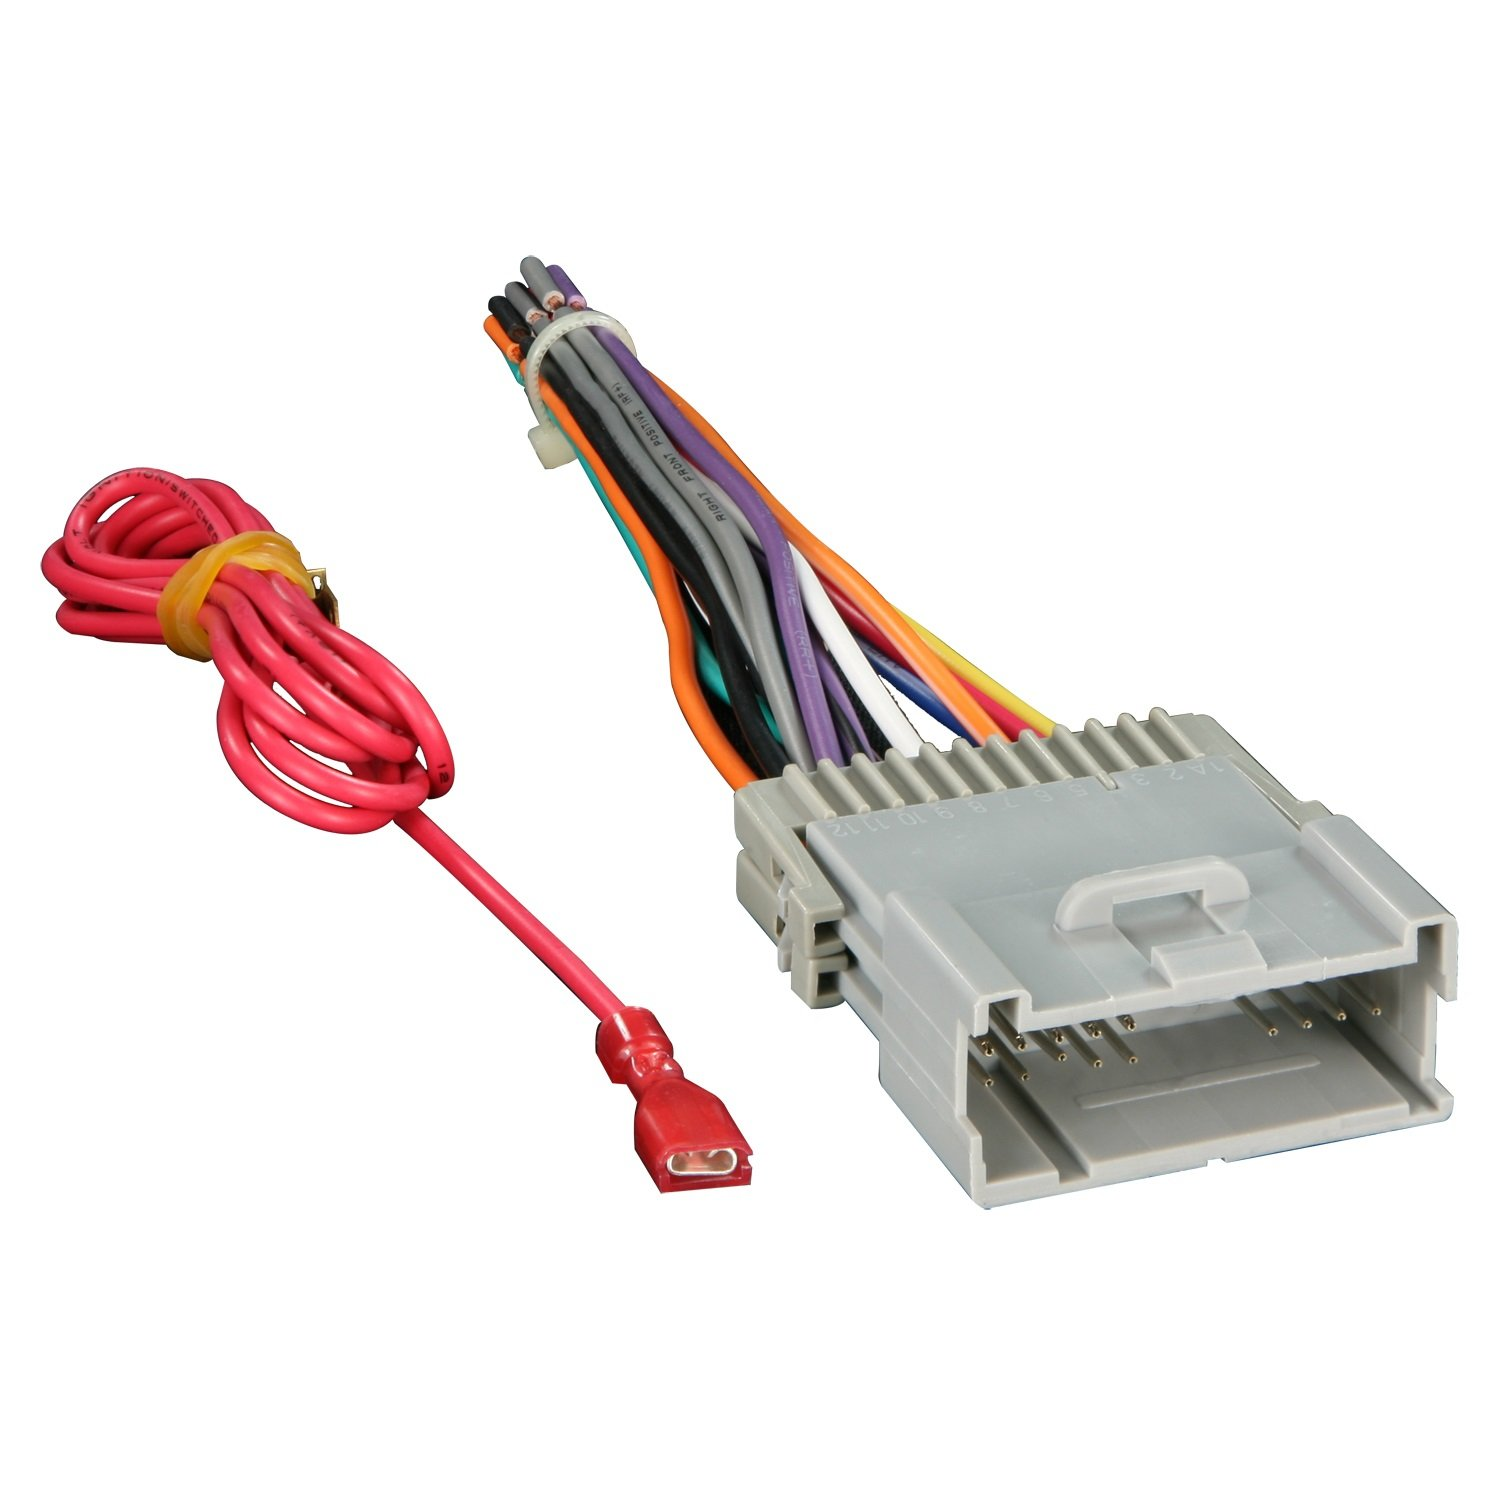 61eewxp9orL._SL1500_ amazon com metra 70 2003 radio wiring harness for gm 98 08  at bayanpartner.co